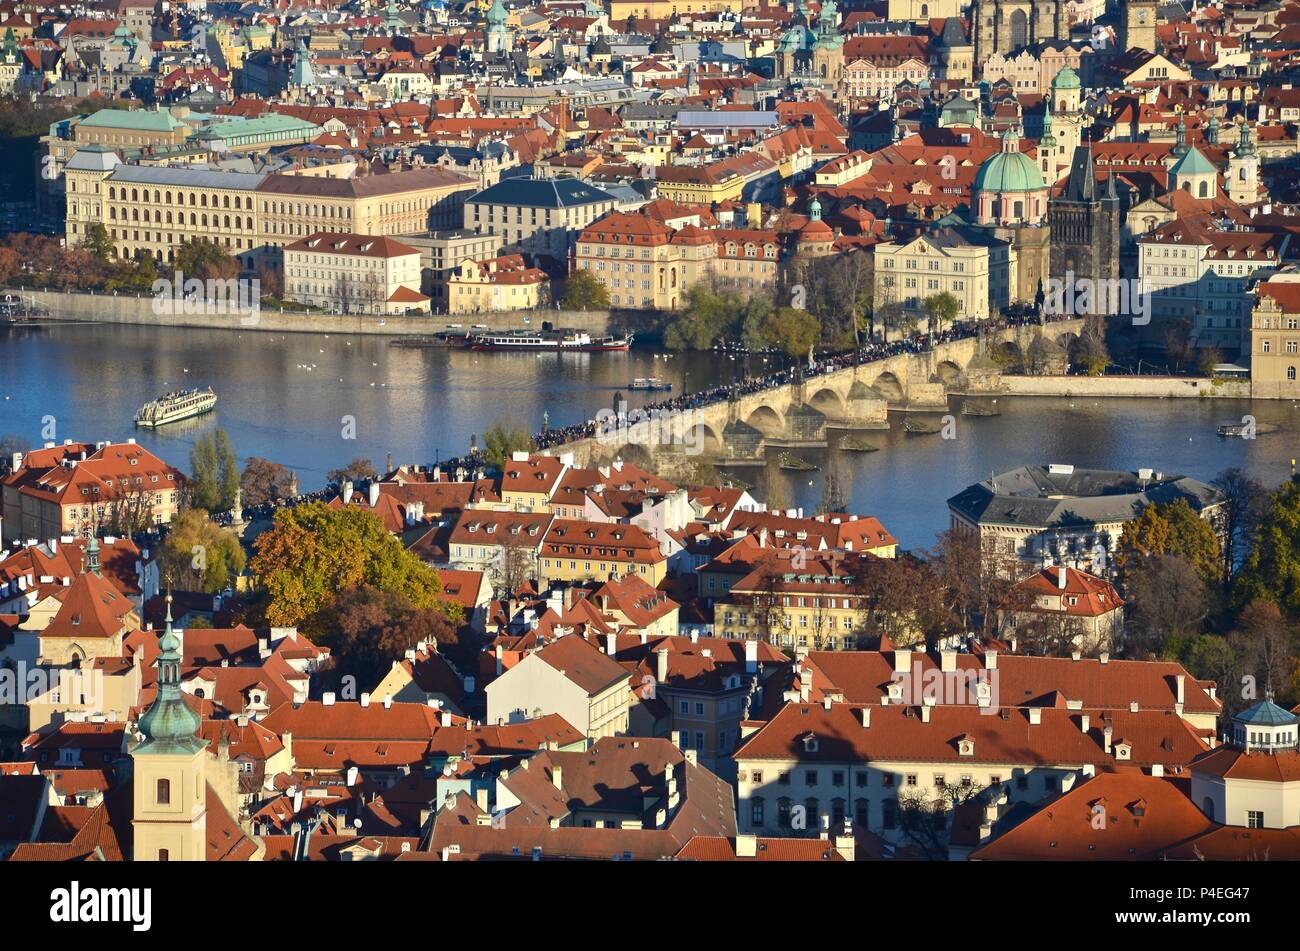 Old town Prague by day with view towards Charles Bridge and river Moldau, people, Czech republic - Stock Image